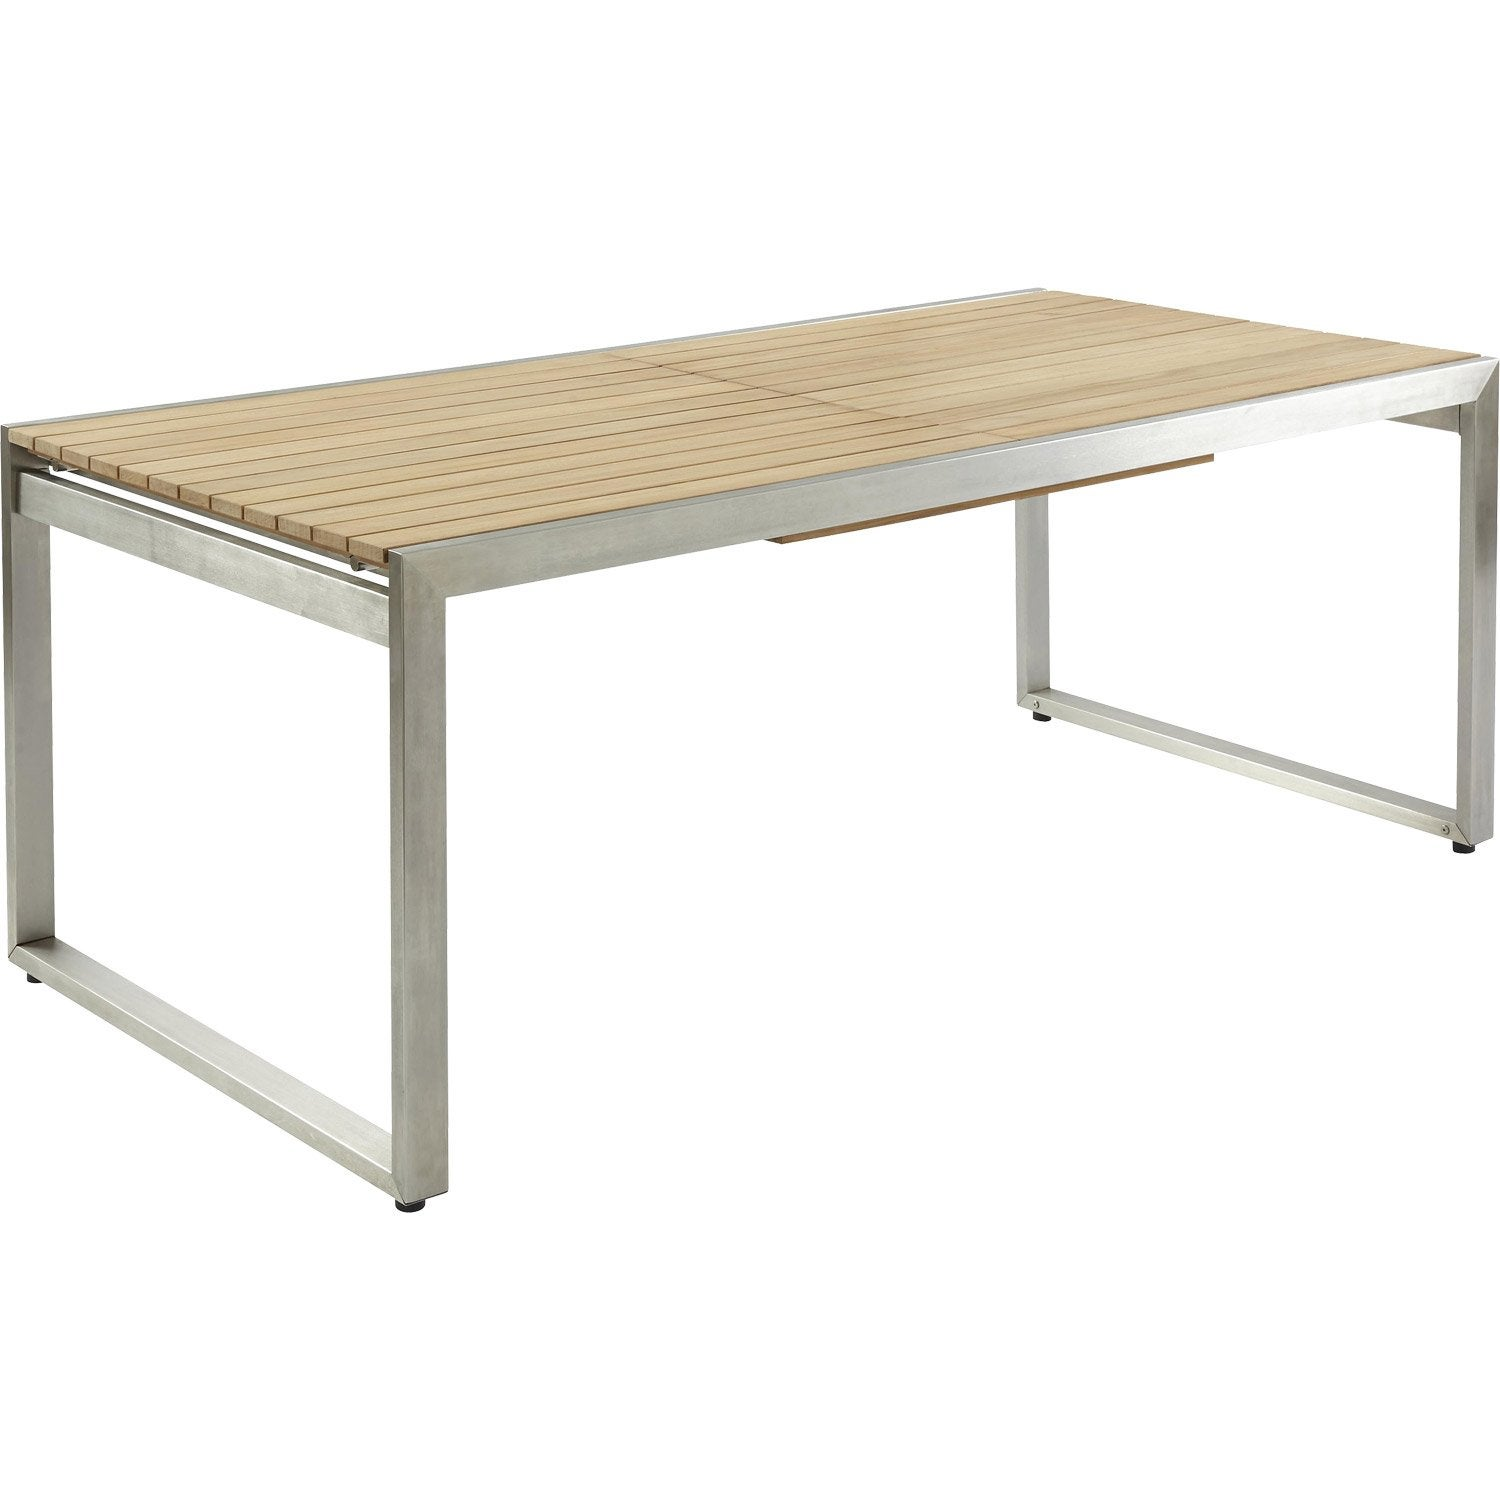 Leroy Merlin Table Jardin Of Table Basse Teck Leroy Merlin